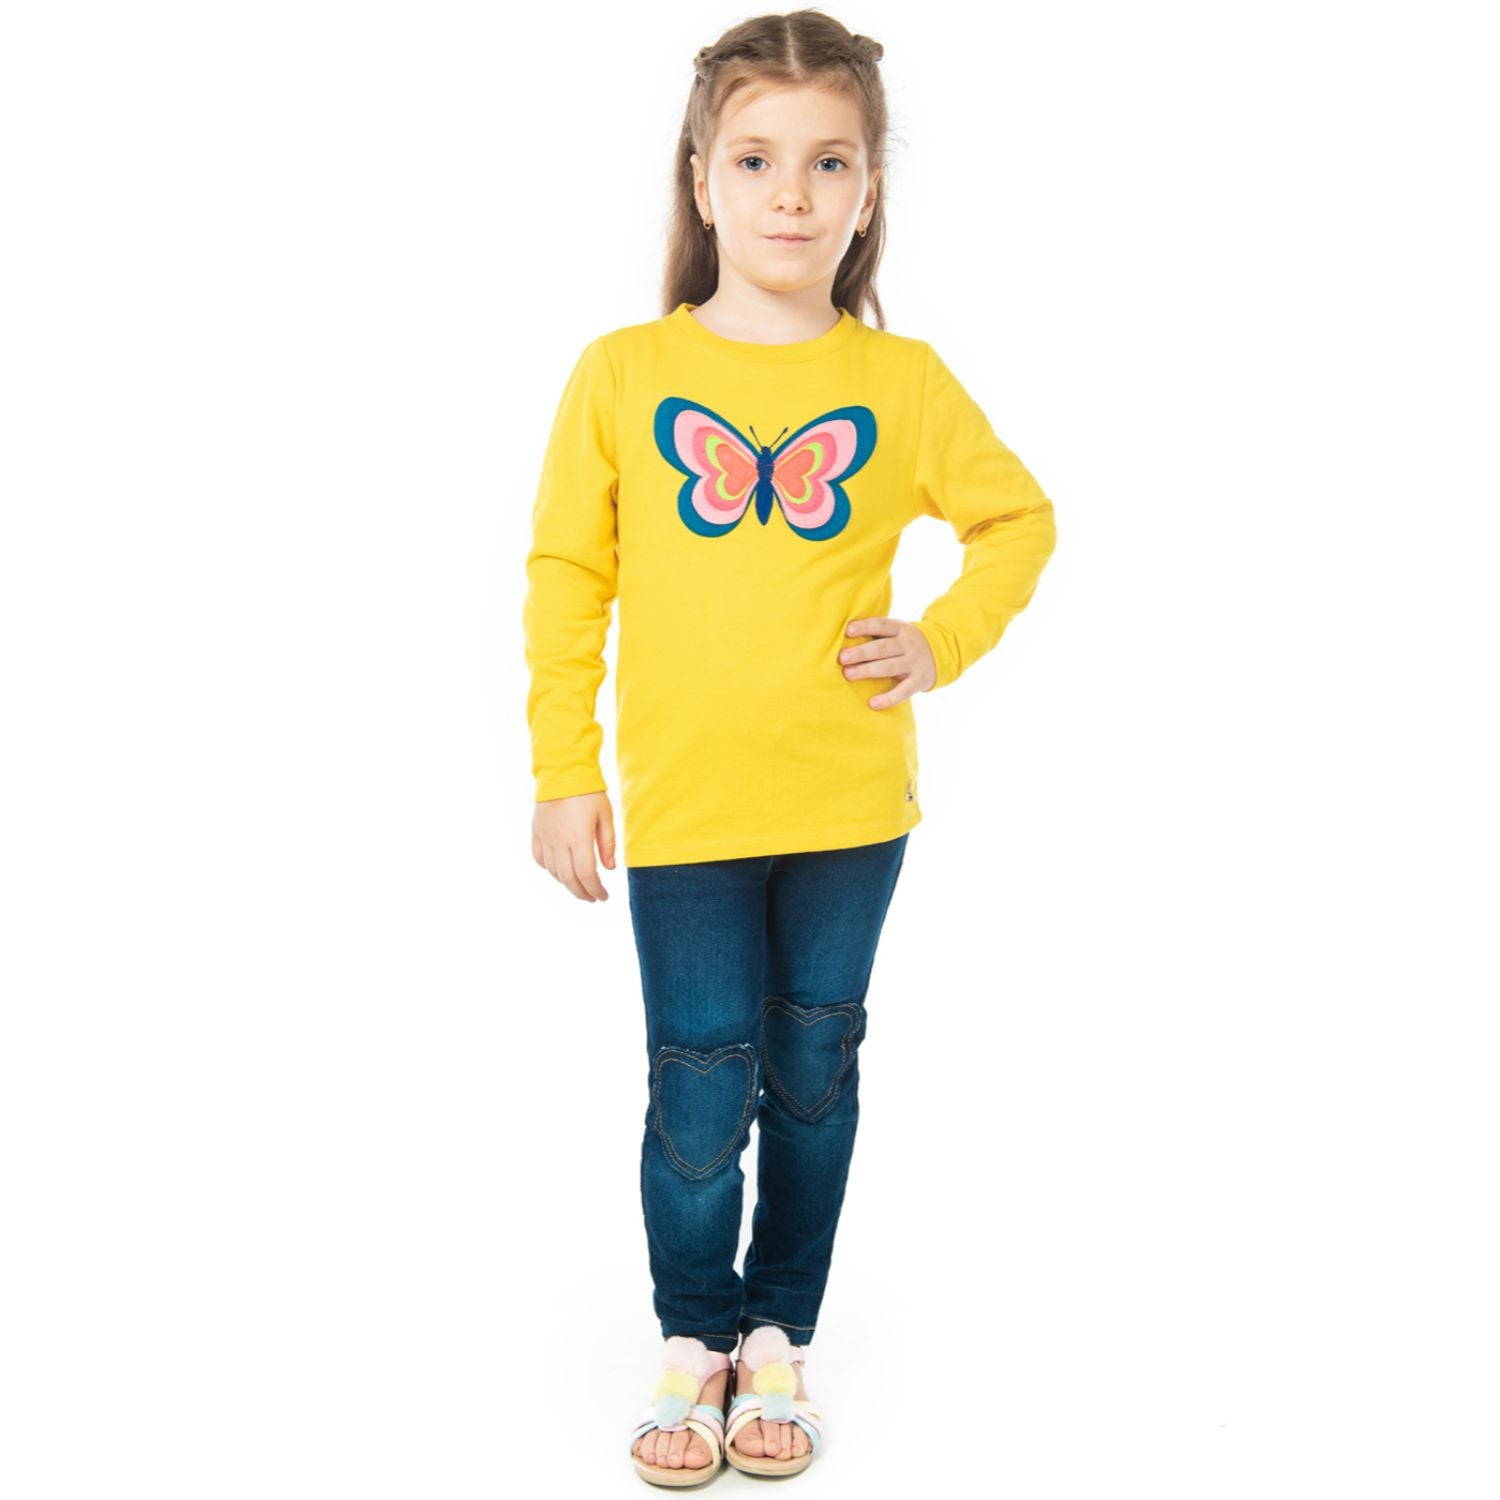 Butterbug Tee for Girls